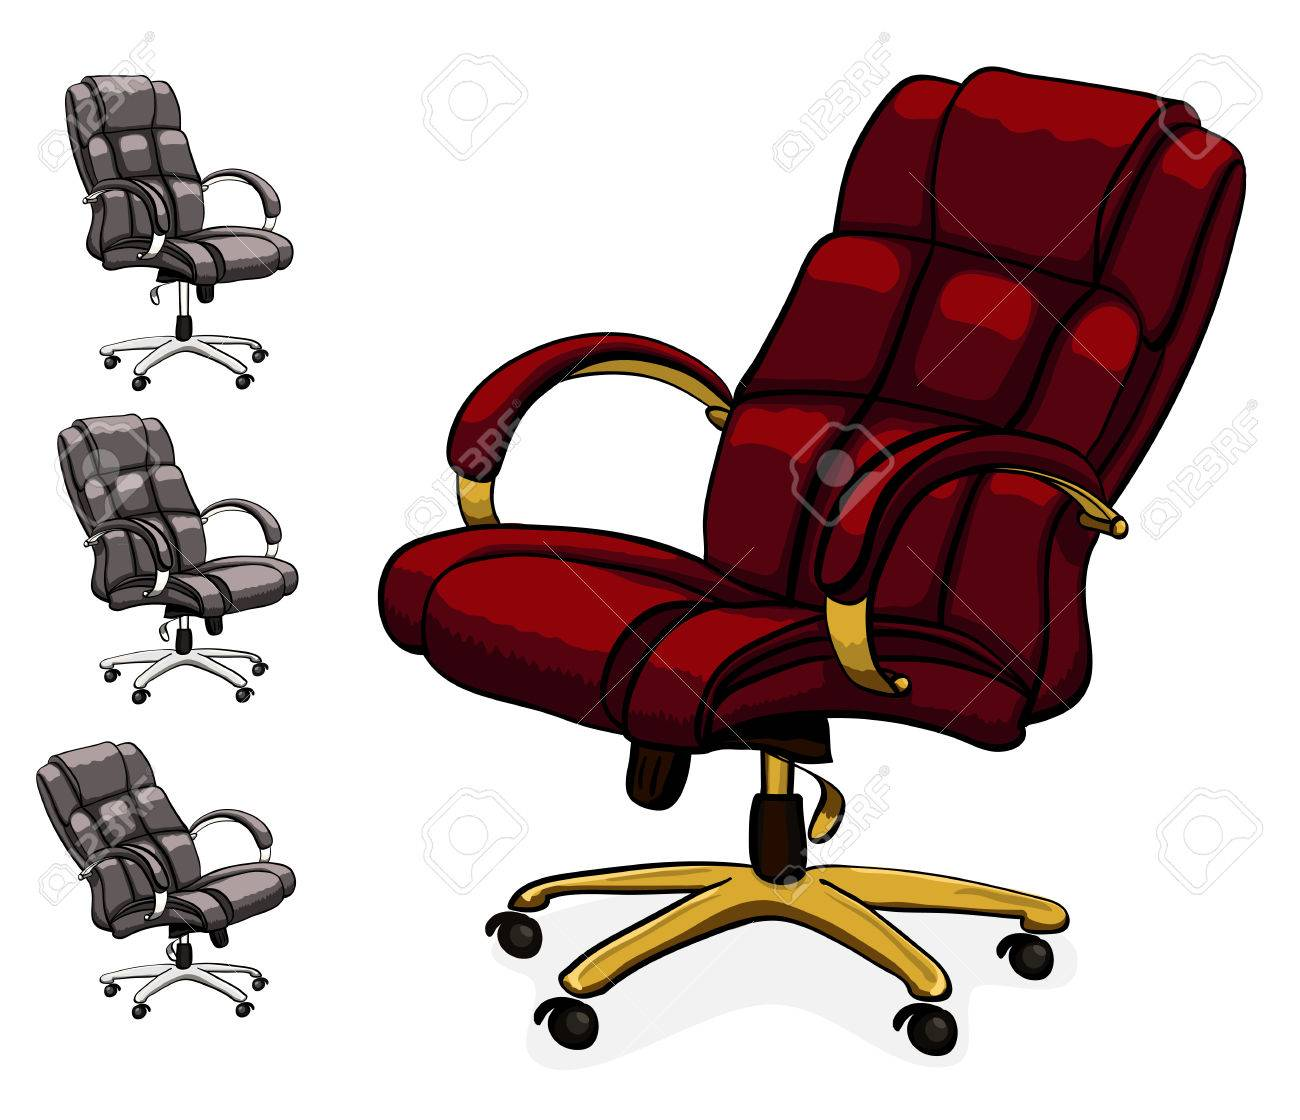 office chair vector wheelchair with pot executive leather desk illustration isolated on white background stock 60726858